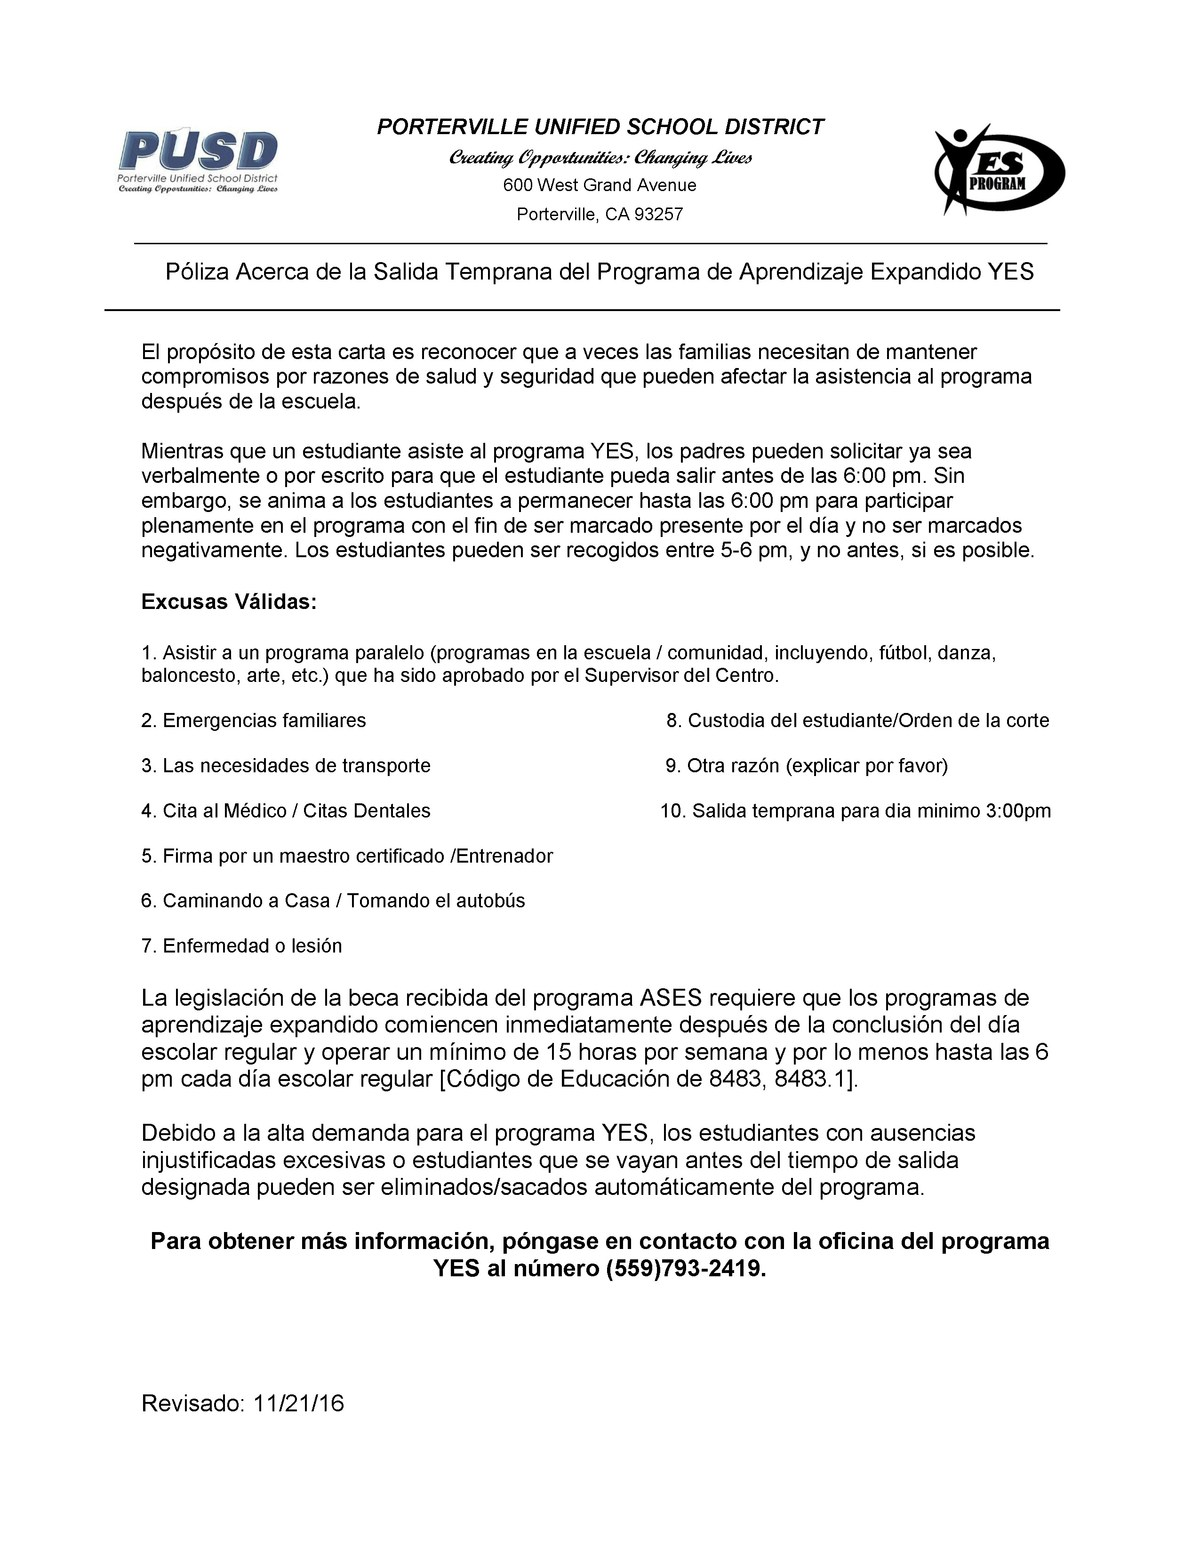 Early Release Policy (Spanish)